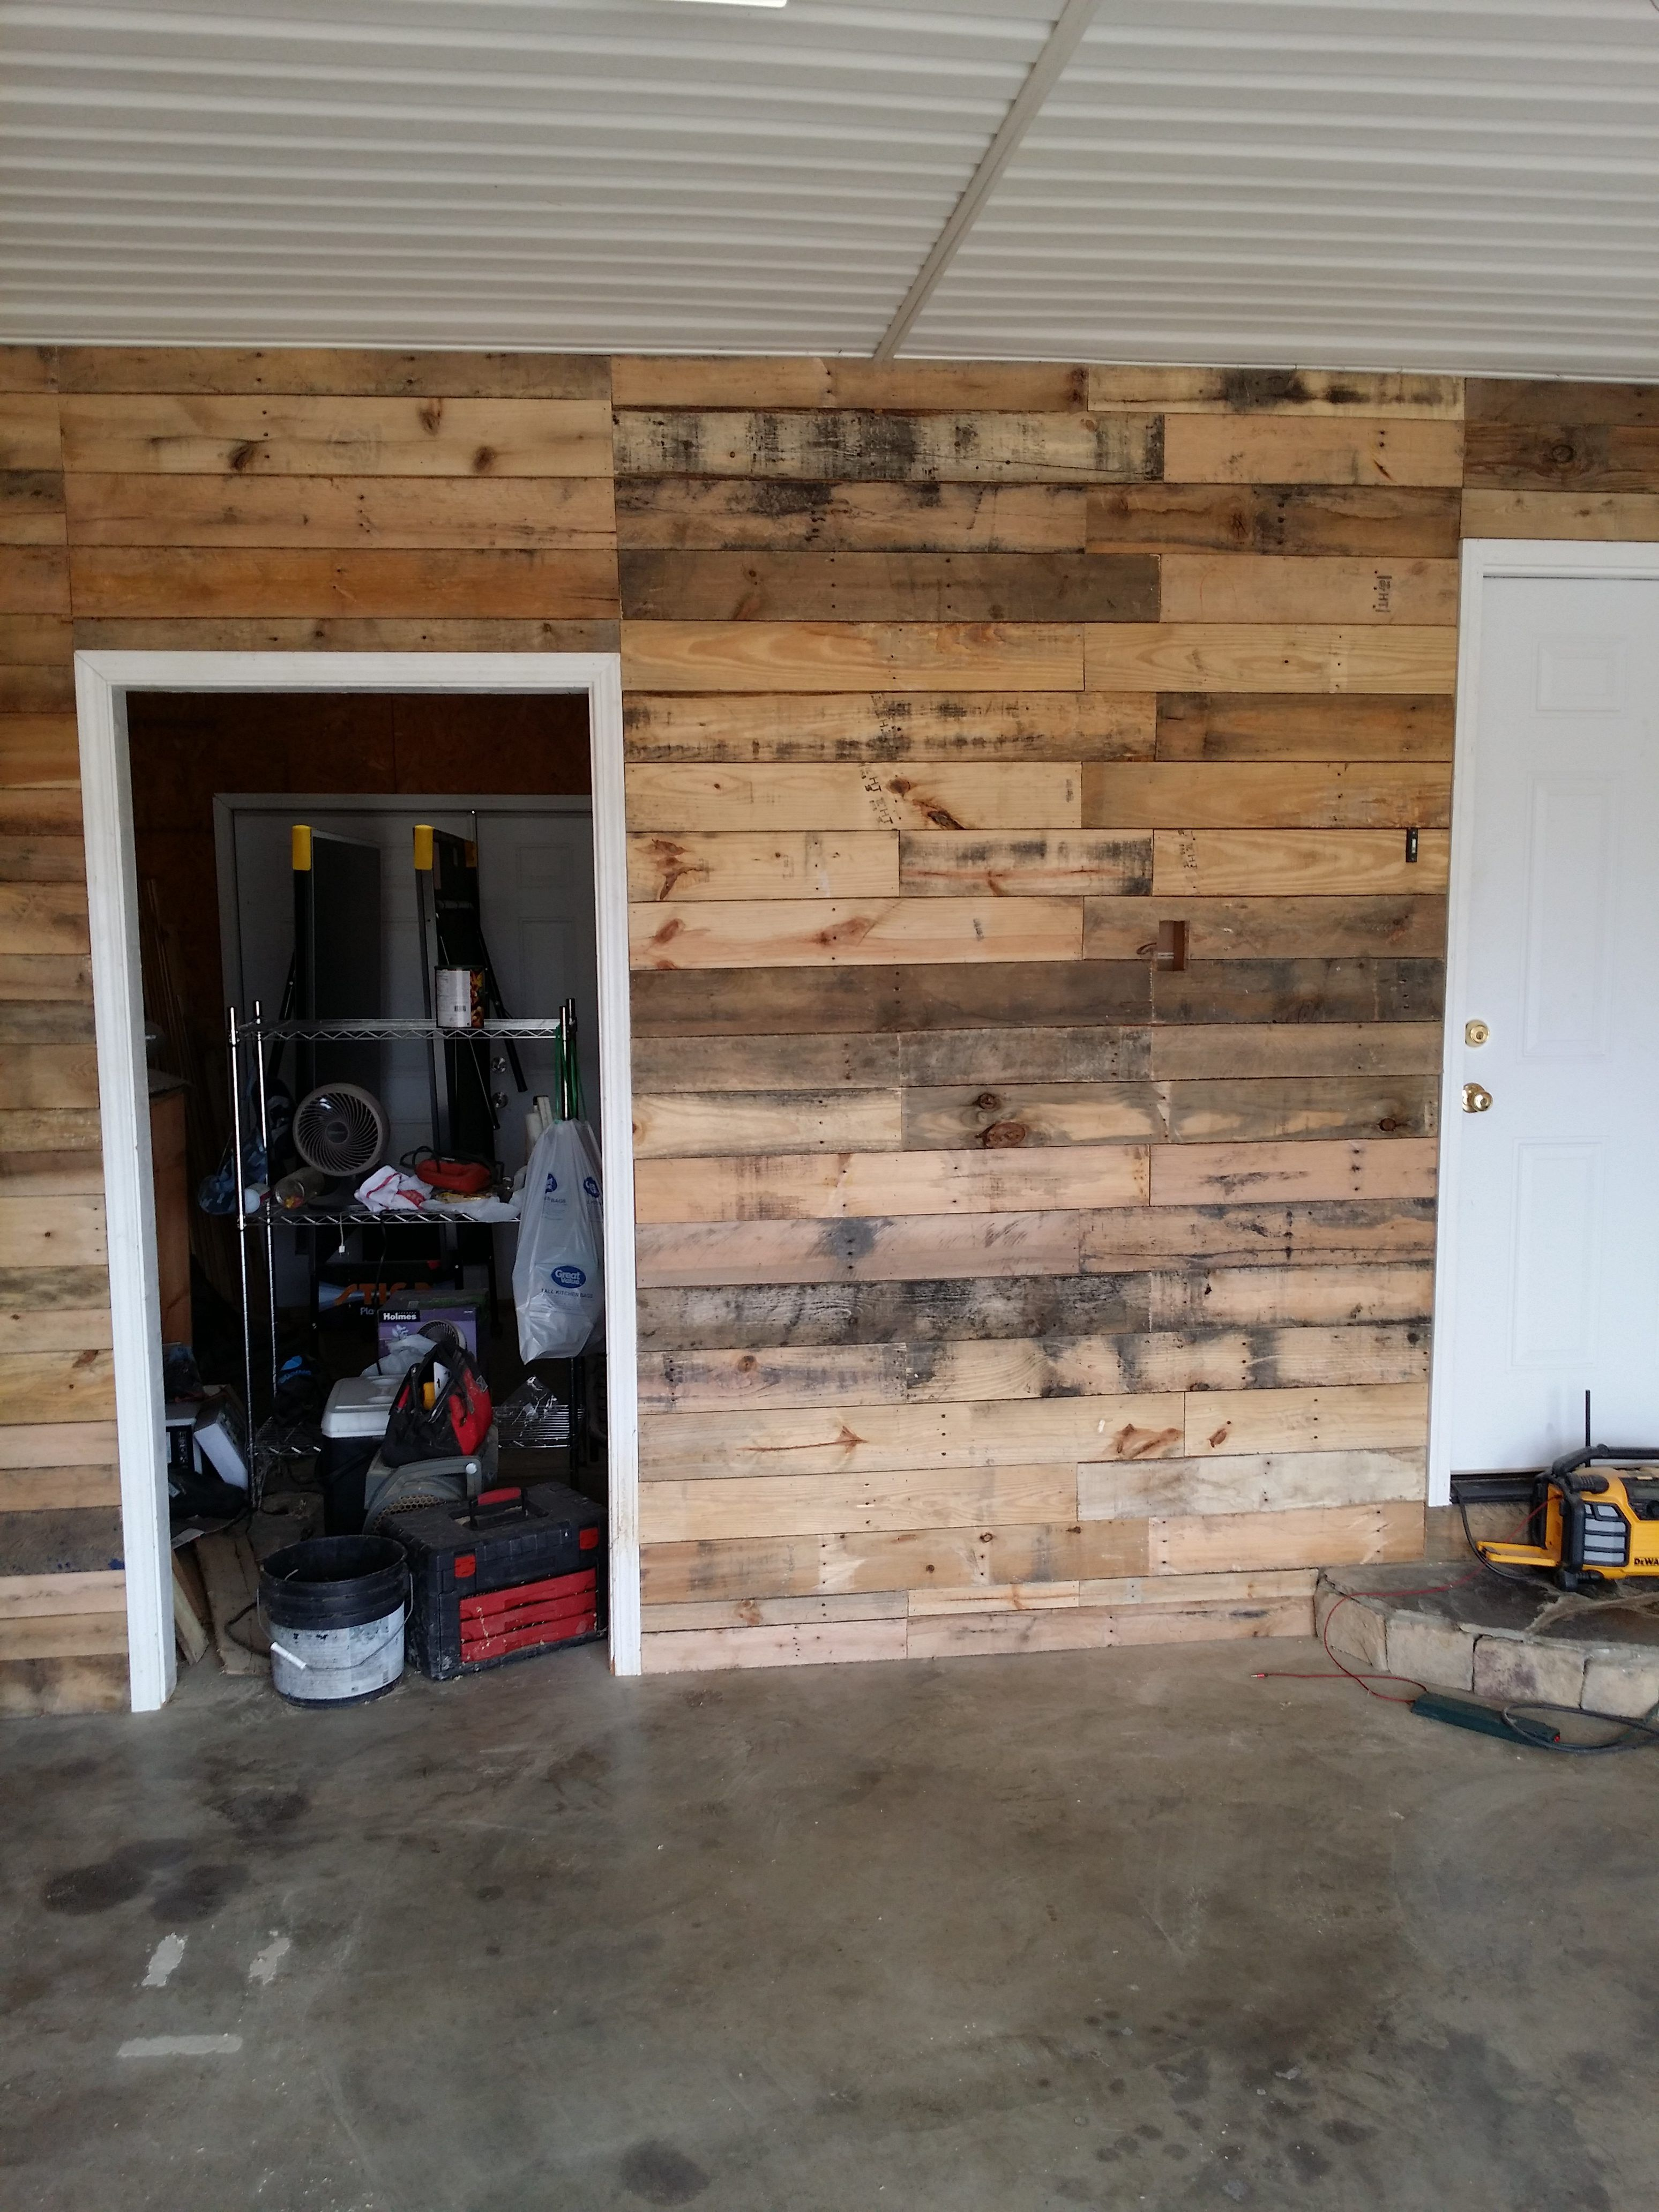 Palletwall Recyclingwoodpallets Why Live With A Boring Unfinished Or Poorly Drywalled Garage That S Really An Eyesore Clad Your Walls And